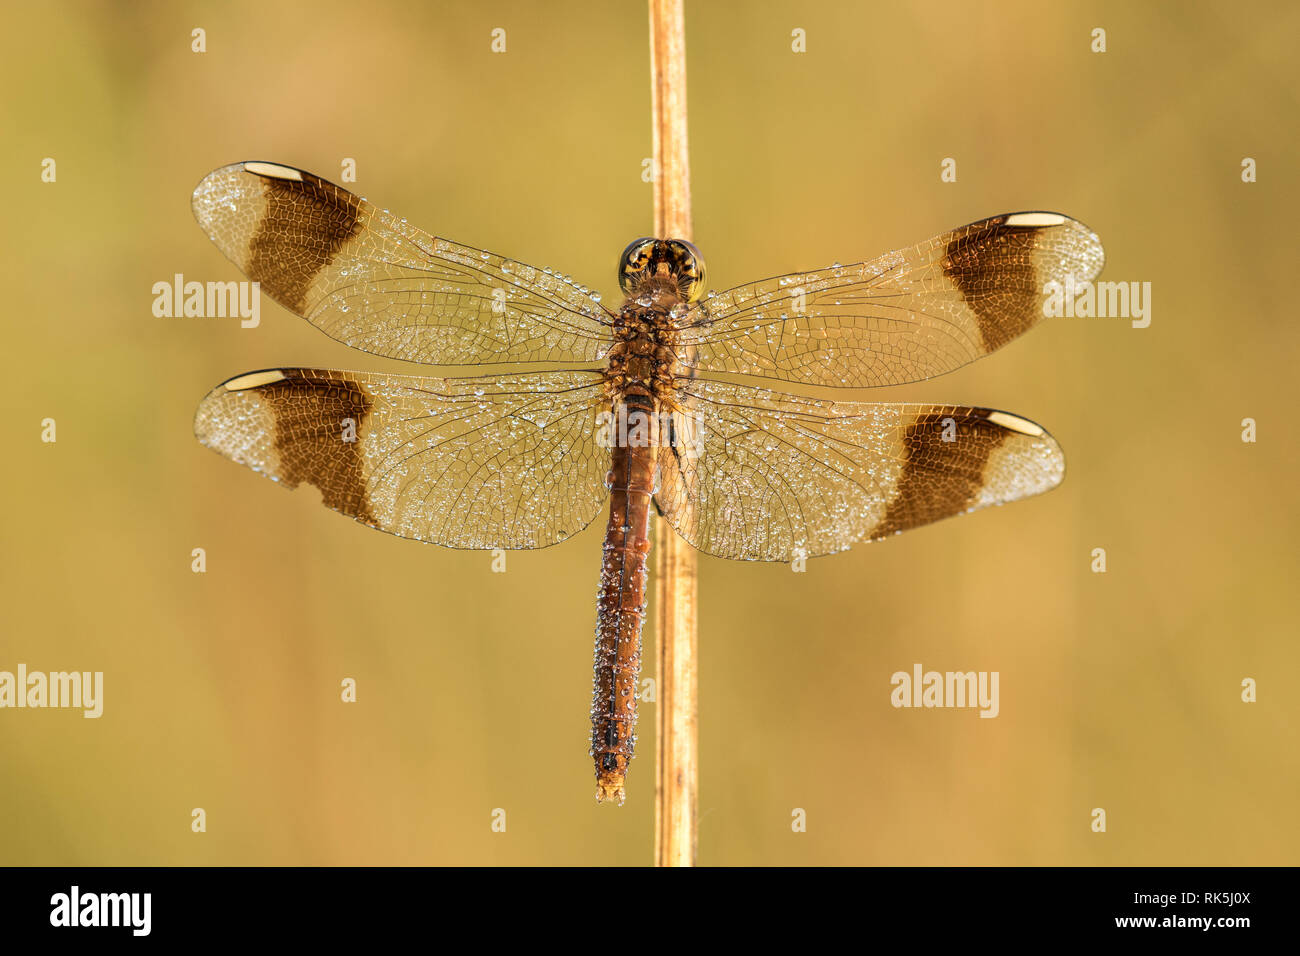 Beautiful nature scene with dragonfly Banded darter (Sympetrum pedemontanum). Macro shot of dragonfly Banded darter (Sympetrum pedemontanum) Stock Photo